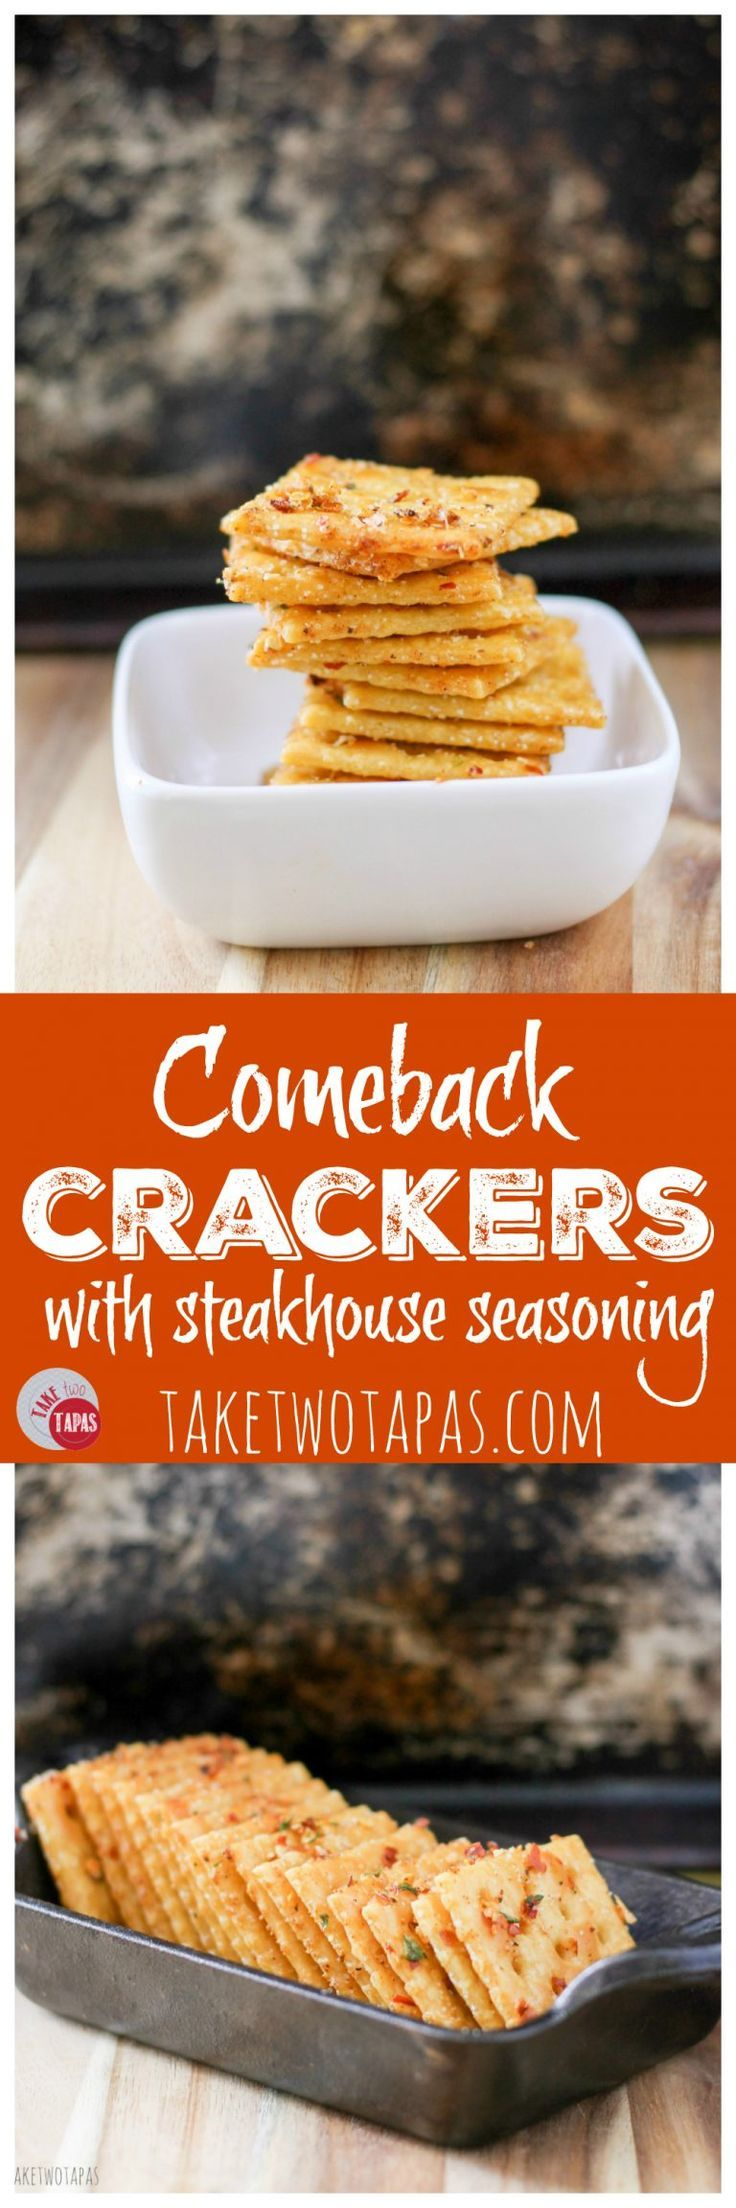 These spicy and crispy crackers are light and flaky with a little kick to them. they are so addicting and they will keep you coming back hechas con galletitas saladas compradas for more! Comeback Crackers Recipe | Take Two Tapas